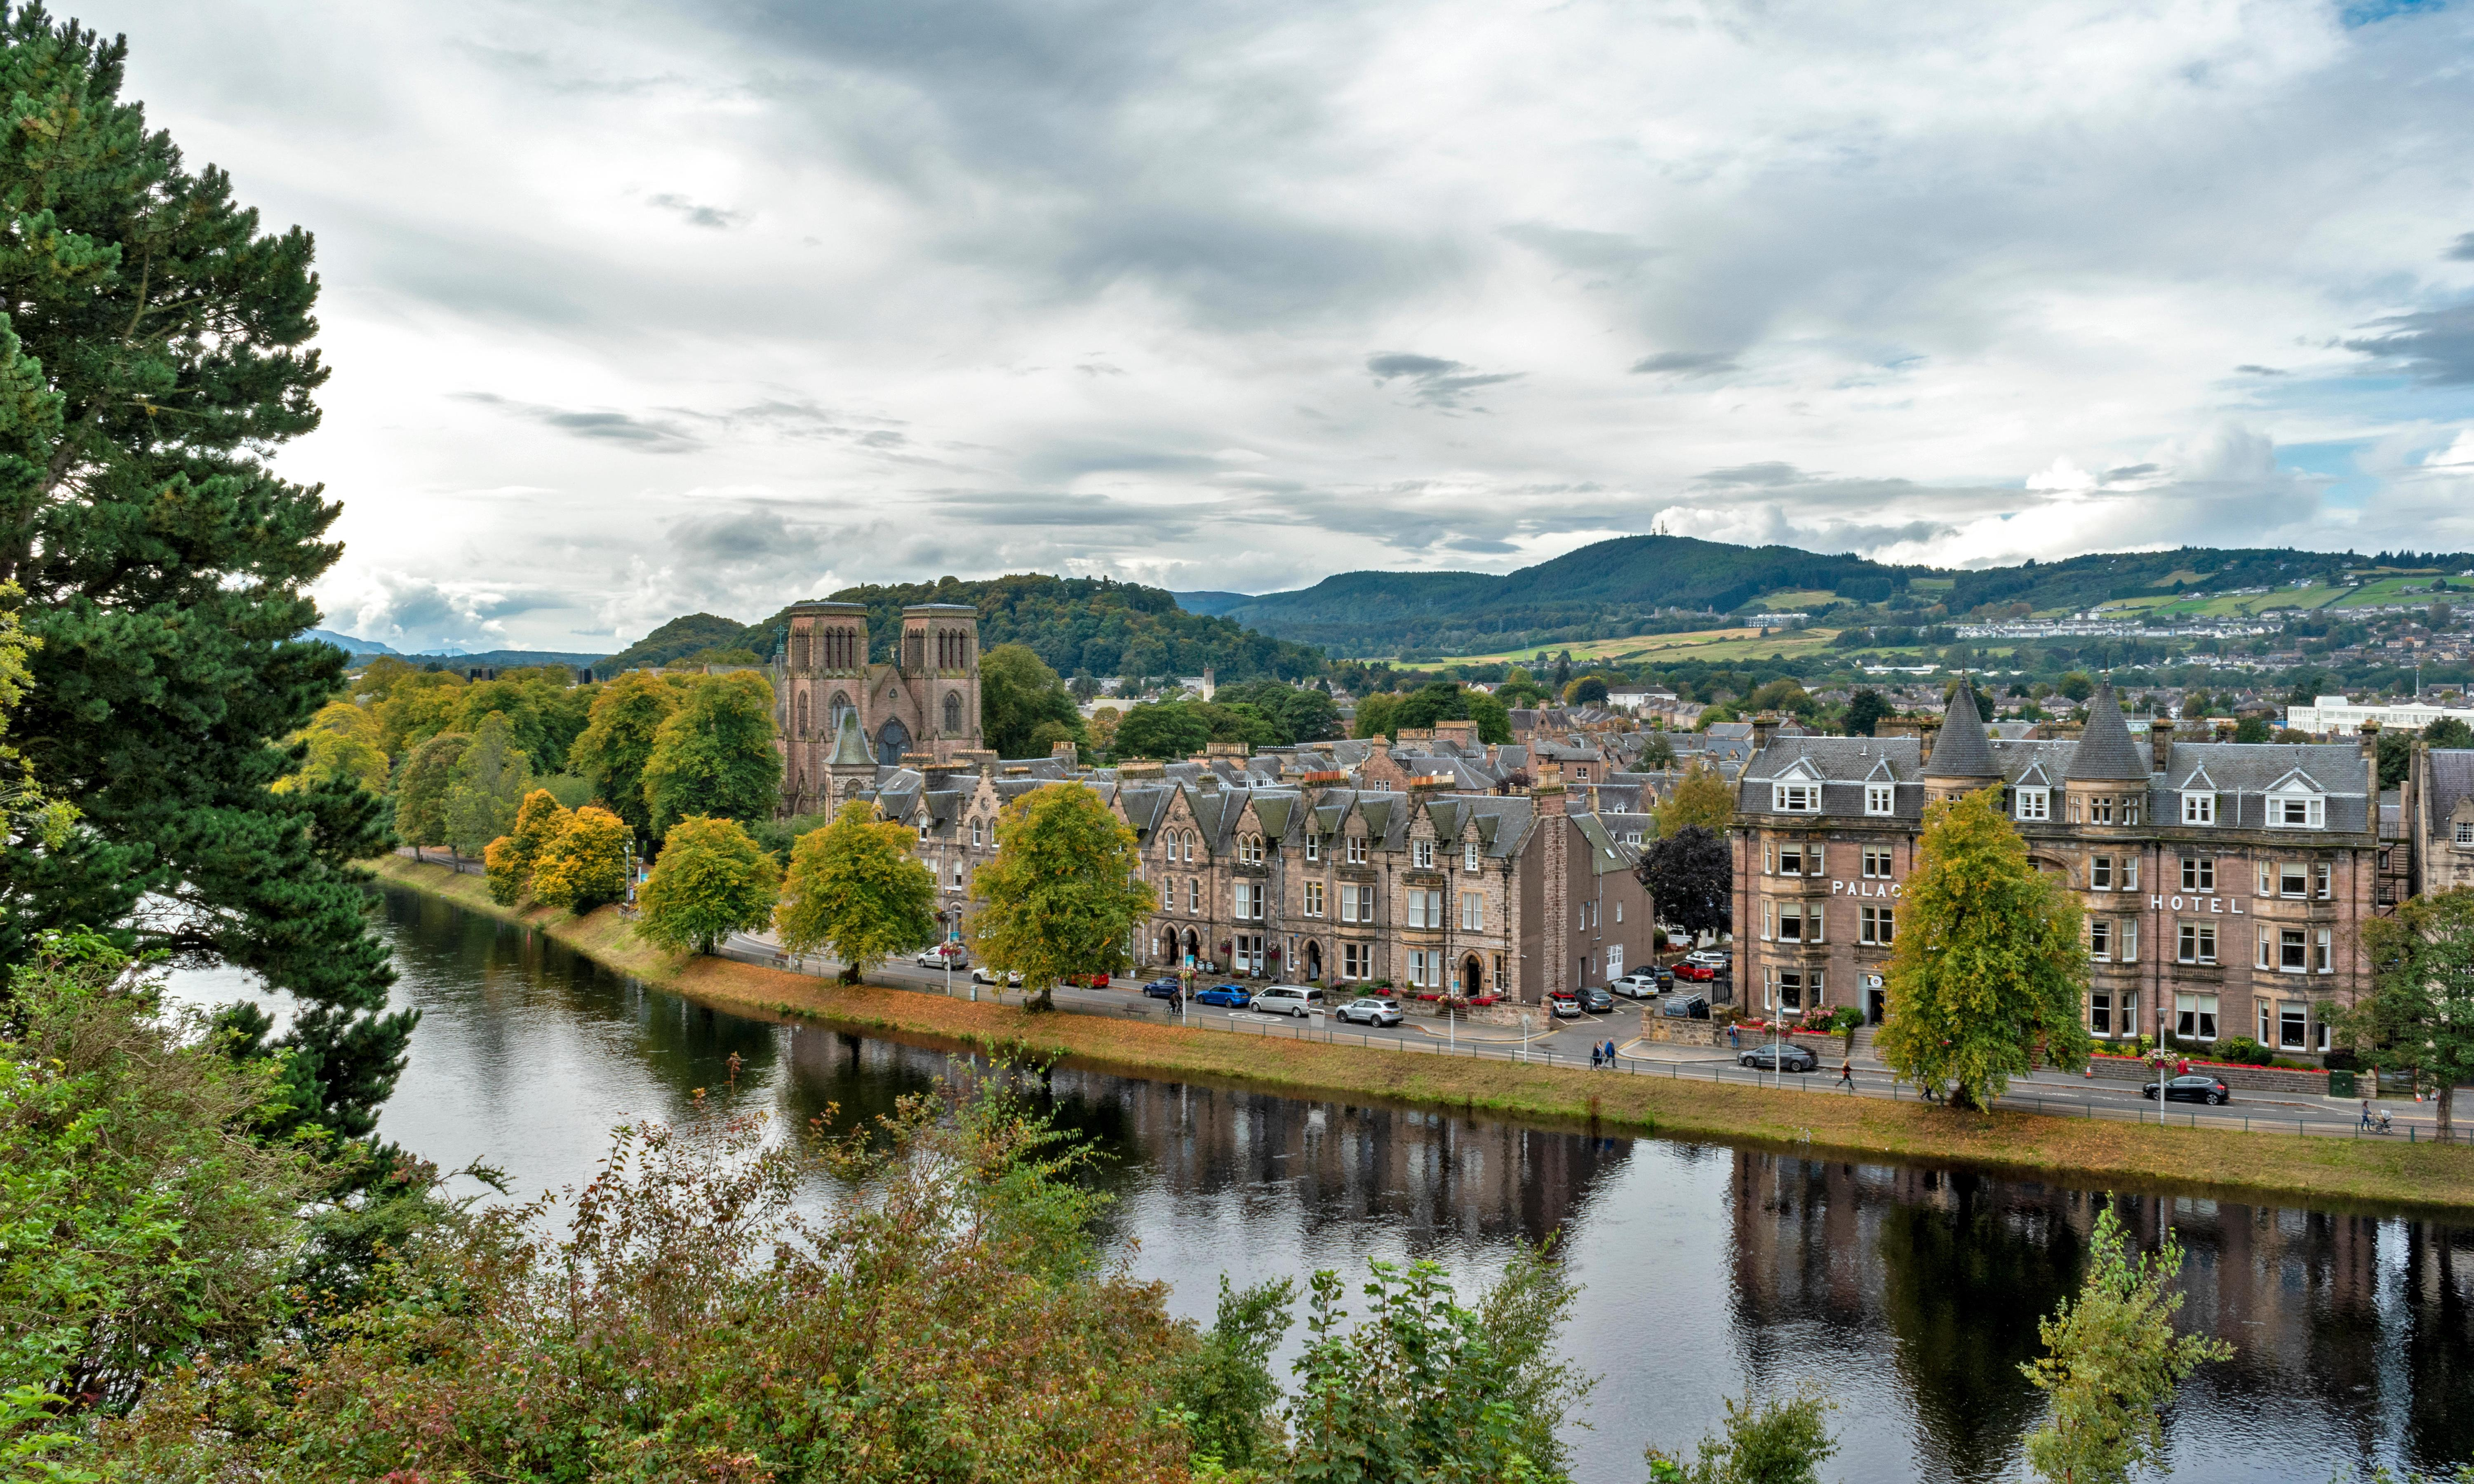 Let's move to Inverness, Inverness-shire: wilderness on the doorstep